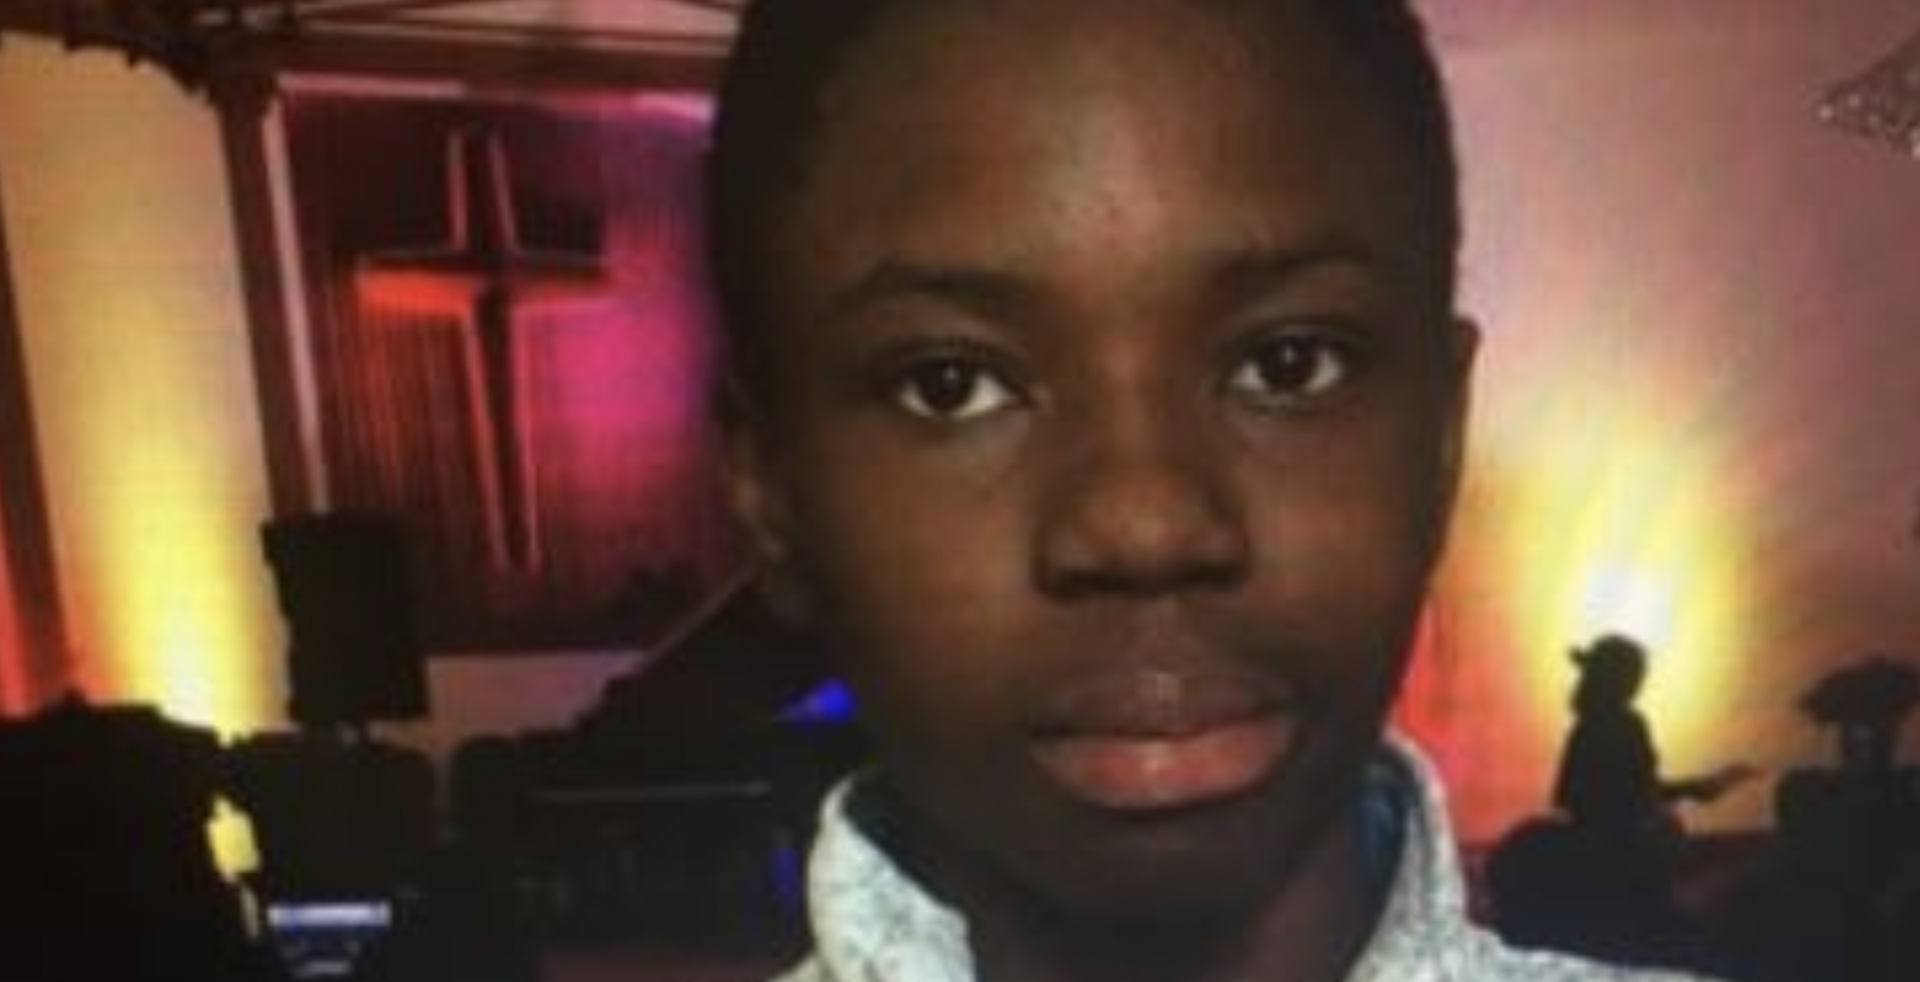 Amber Alert in effect for 14-year-old boy abducted in North York